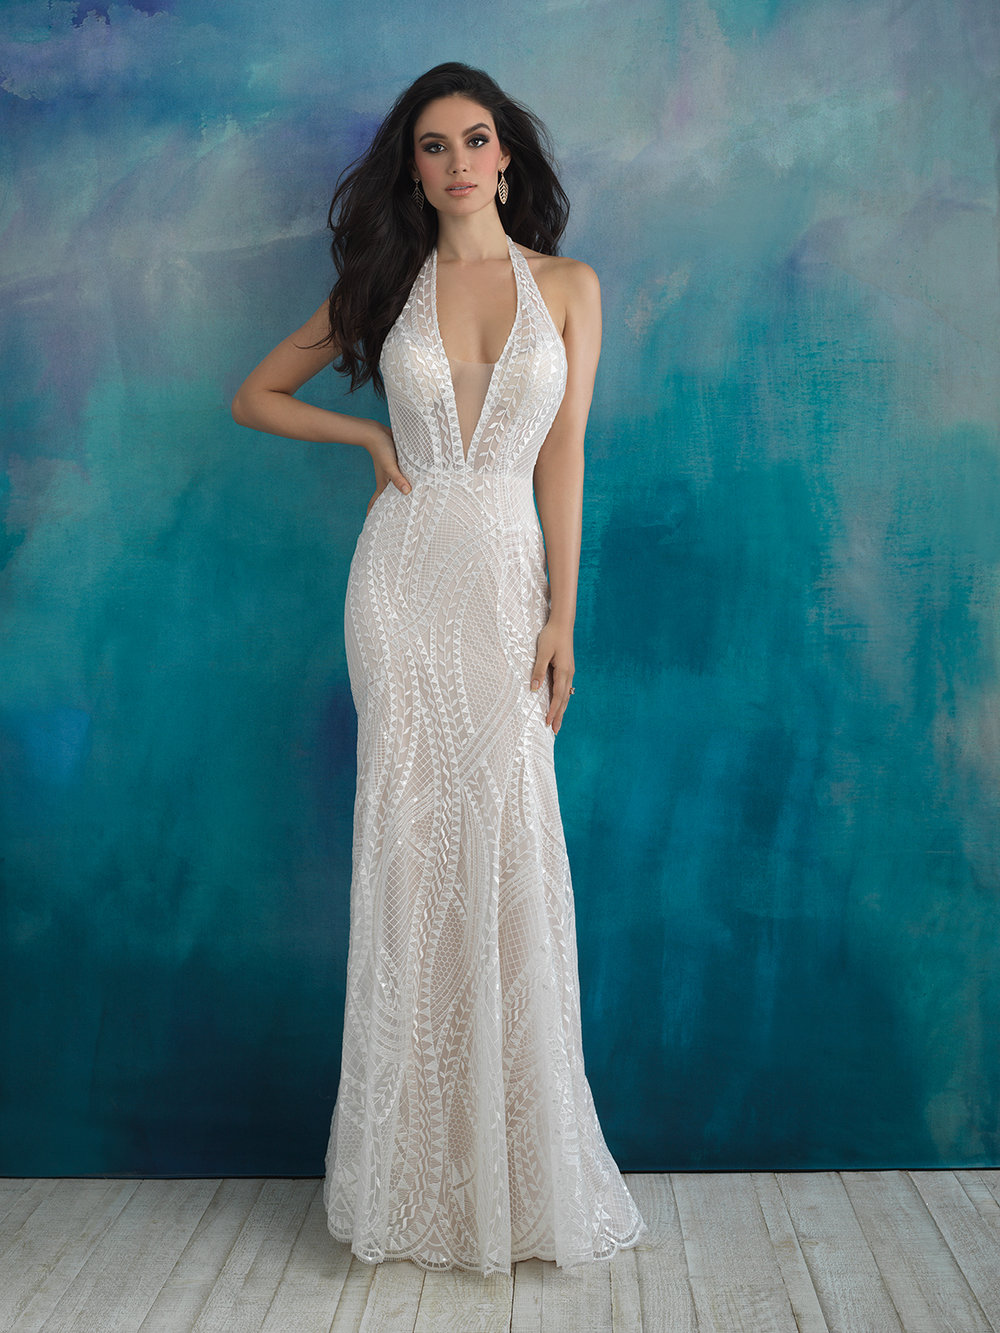 Style 9522 - The overskirt of this halter gown is embroidered with intertwining vines and geometric patterns.